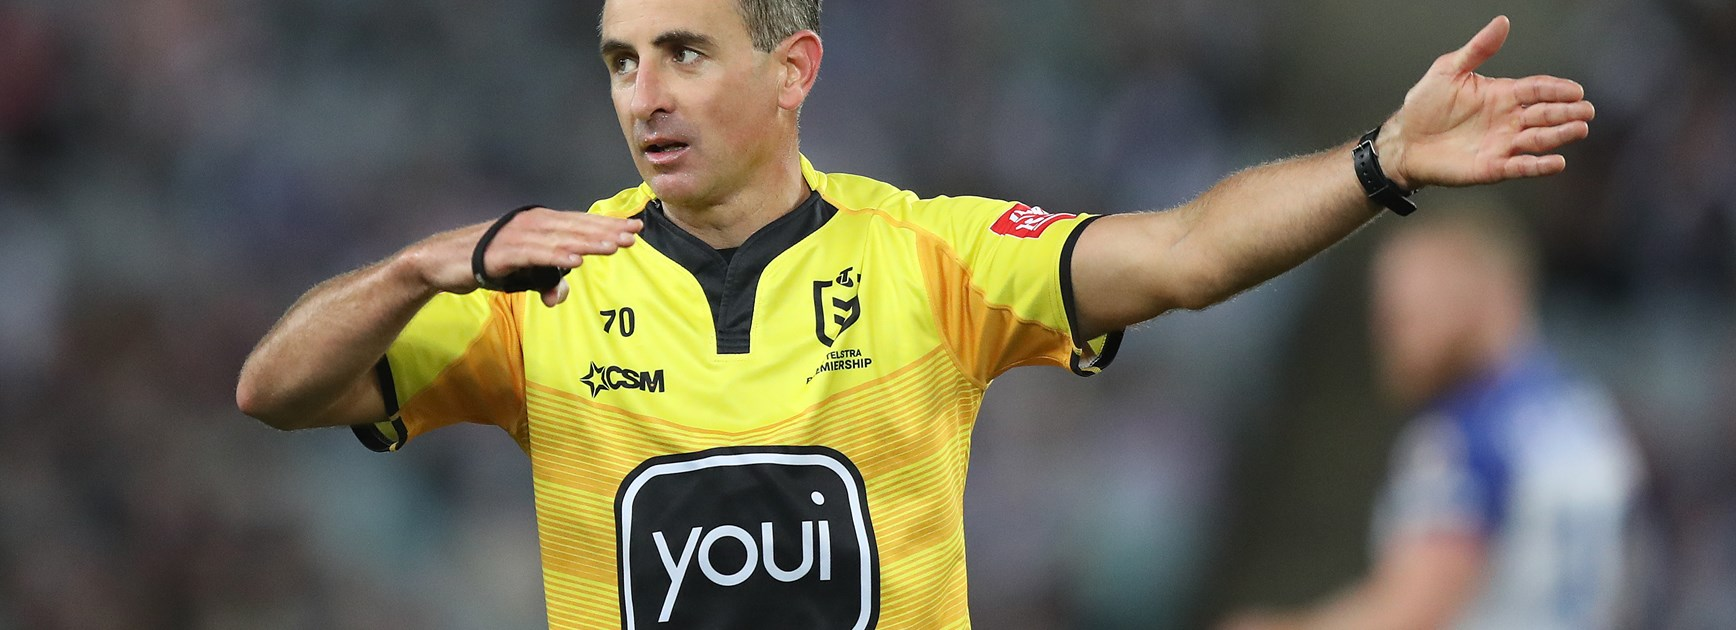 'Favourite place in the world to referee': Sutton ready for decider